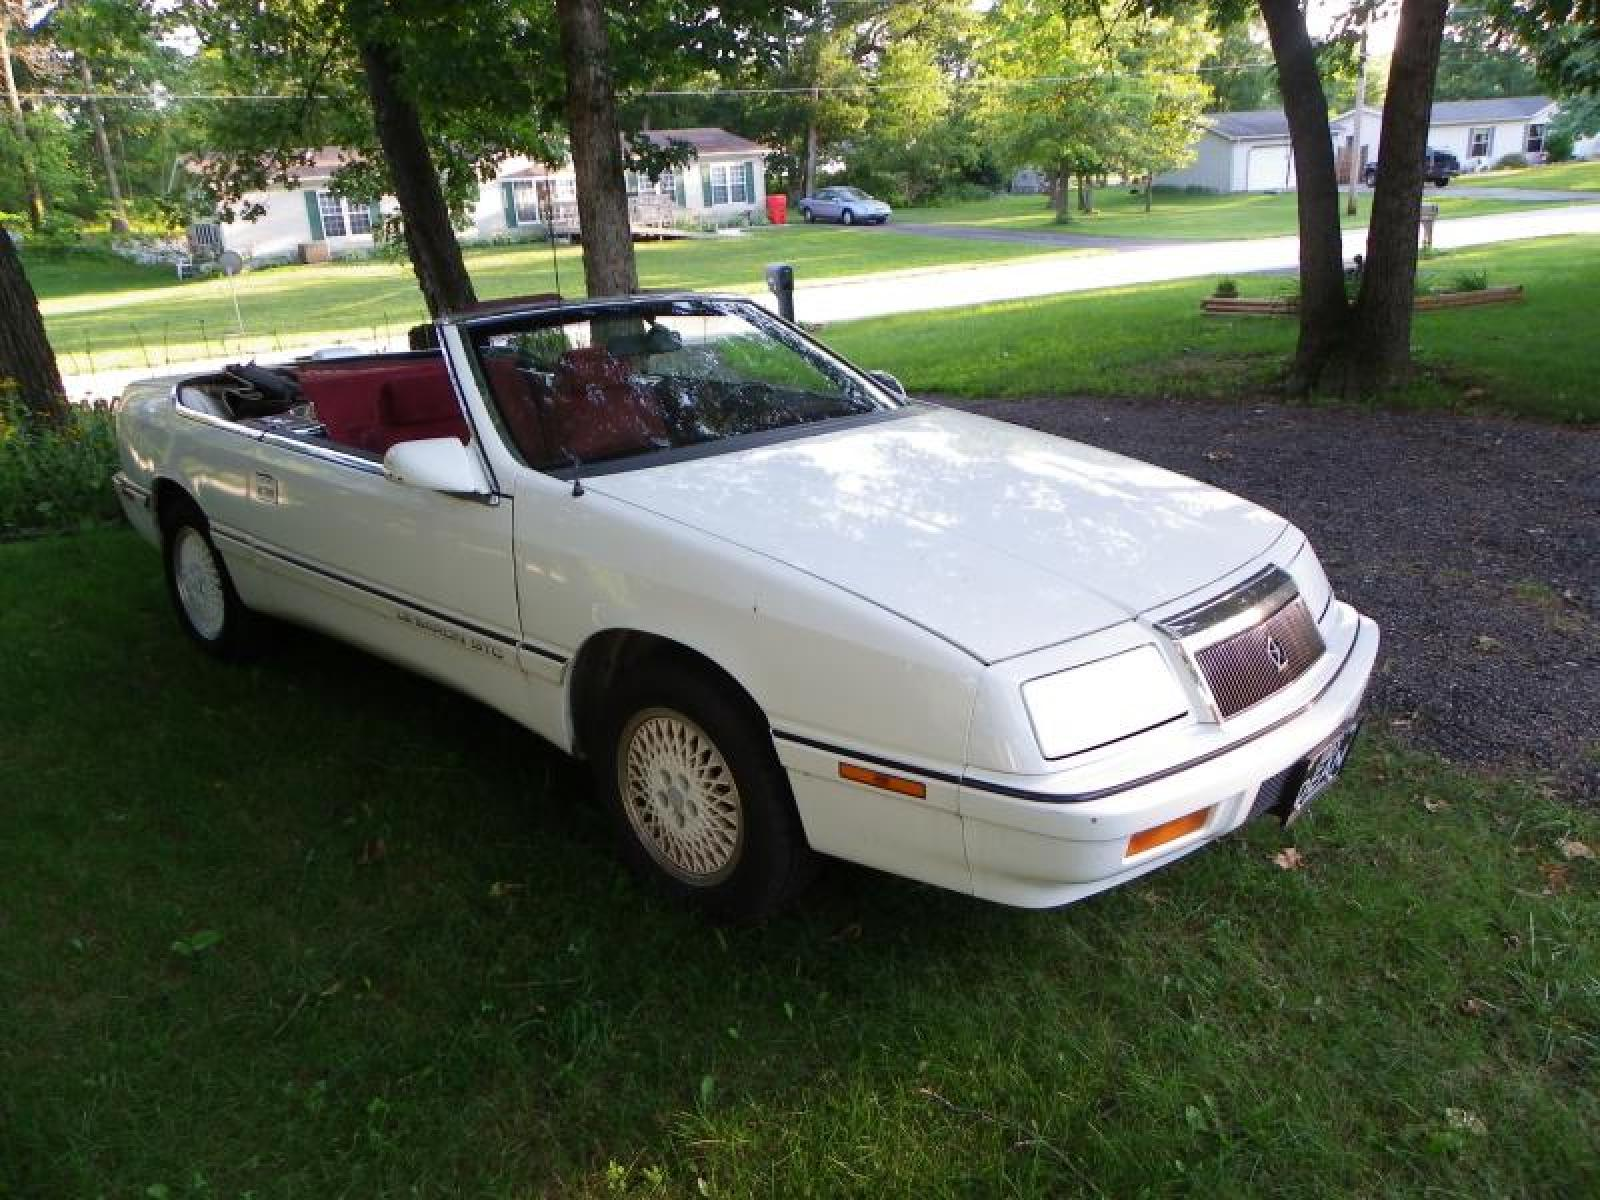 800 1024 1280 1600 Origin 1991 Chrysler Le Baron